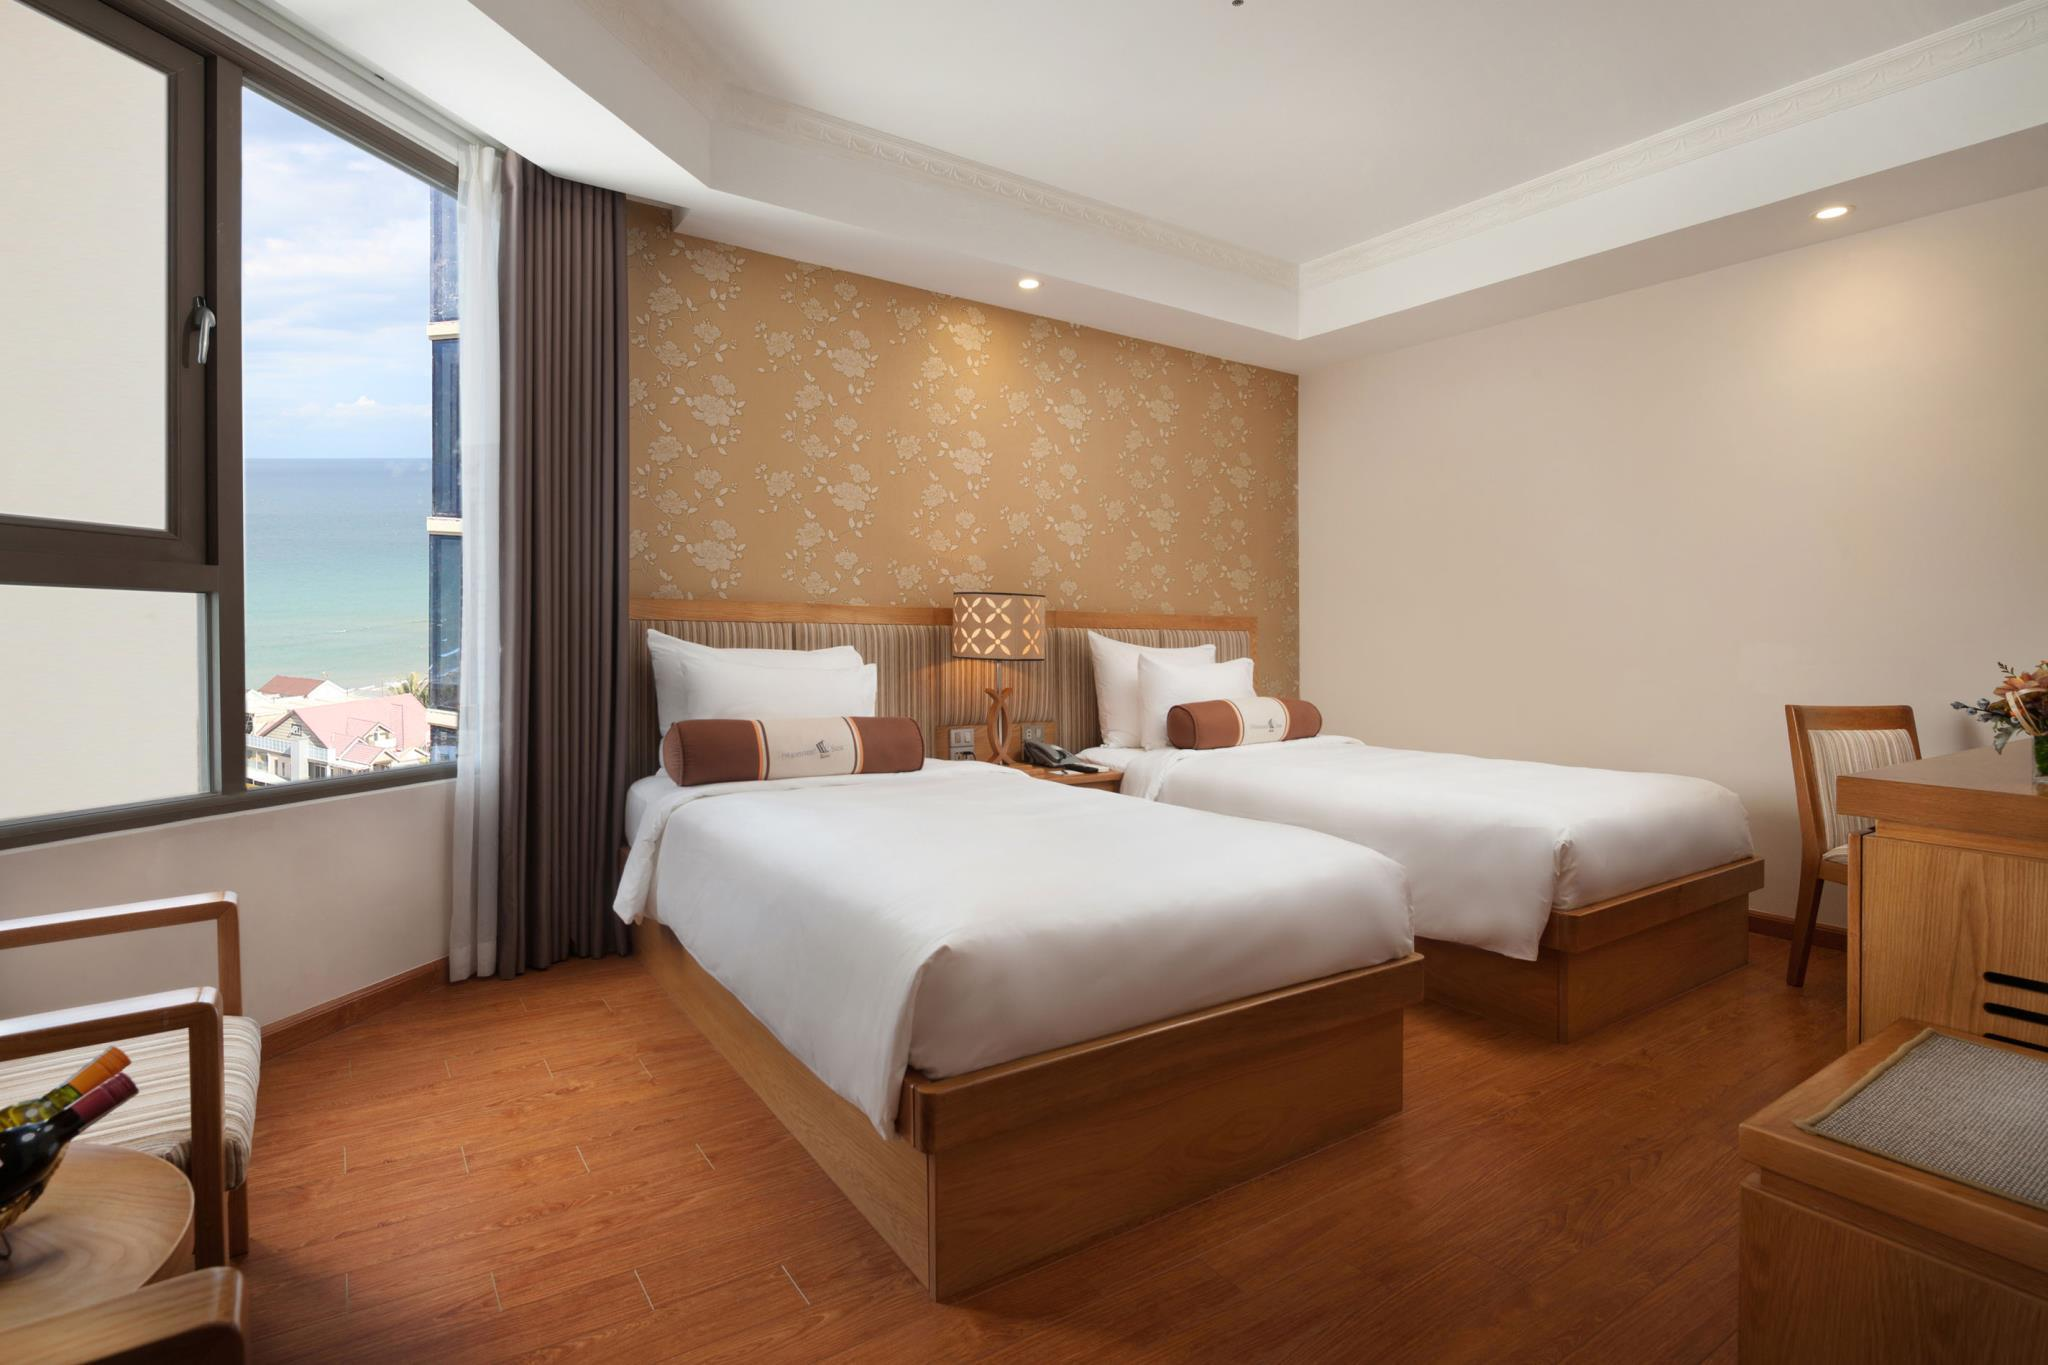 Deluxe 2 giường Hướng biển một phần (Deluxe Twin Partial Sea View)